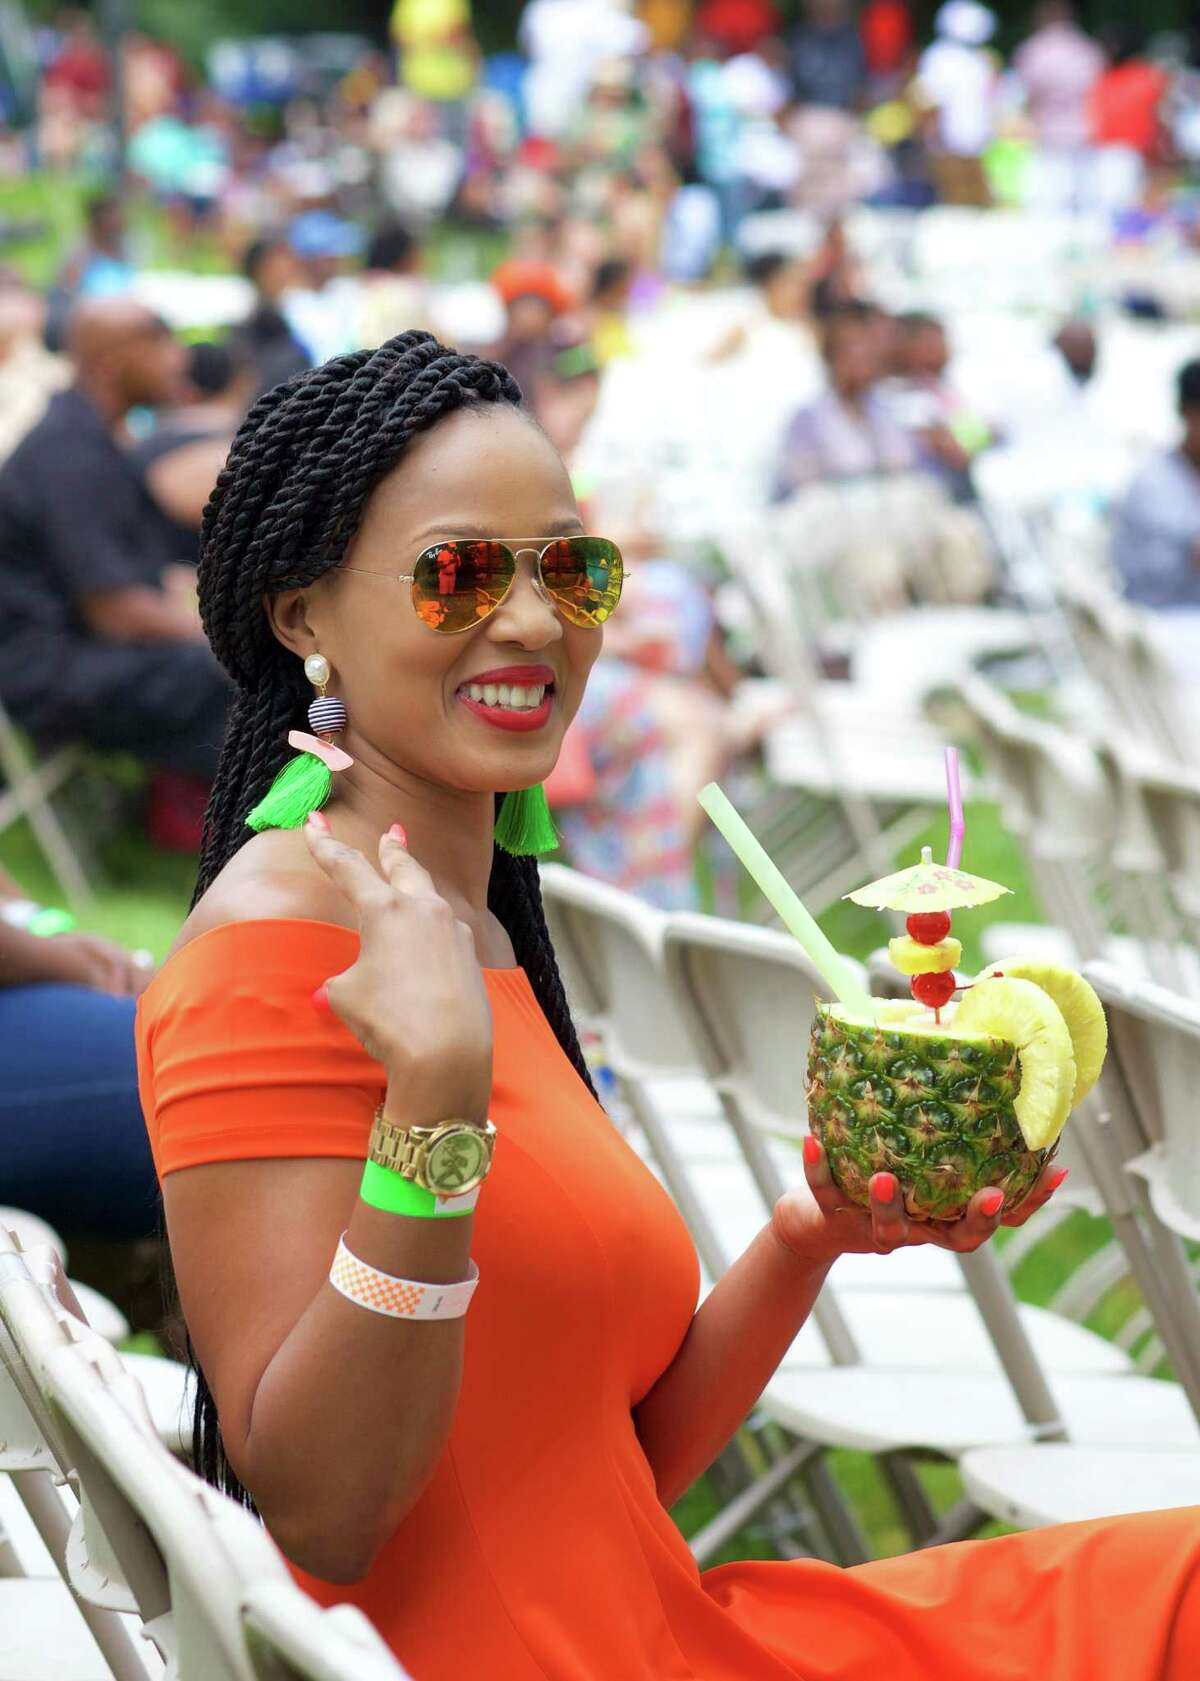 Enjoying the music and a delicious Pina Colada is Darcia Prince from Queens, NY, during the Sixth Annual Westside Reggae Festival that took place on Sunday, July 23rd, 2017, at Ives Concert Park in Danbury, CT.